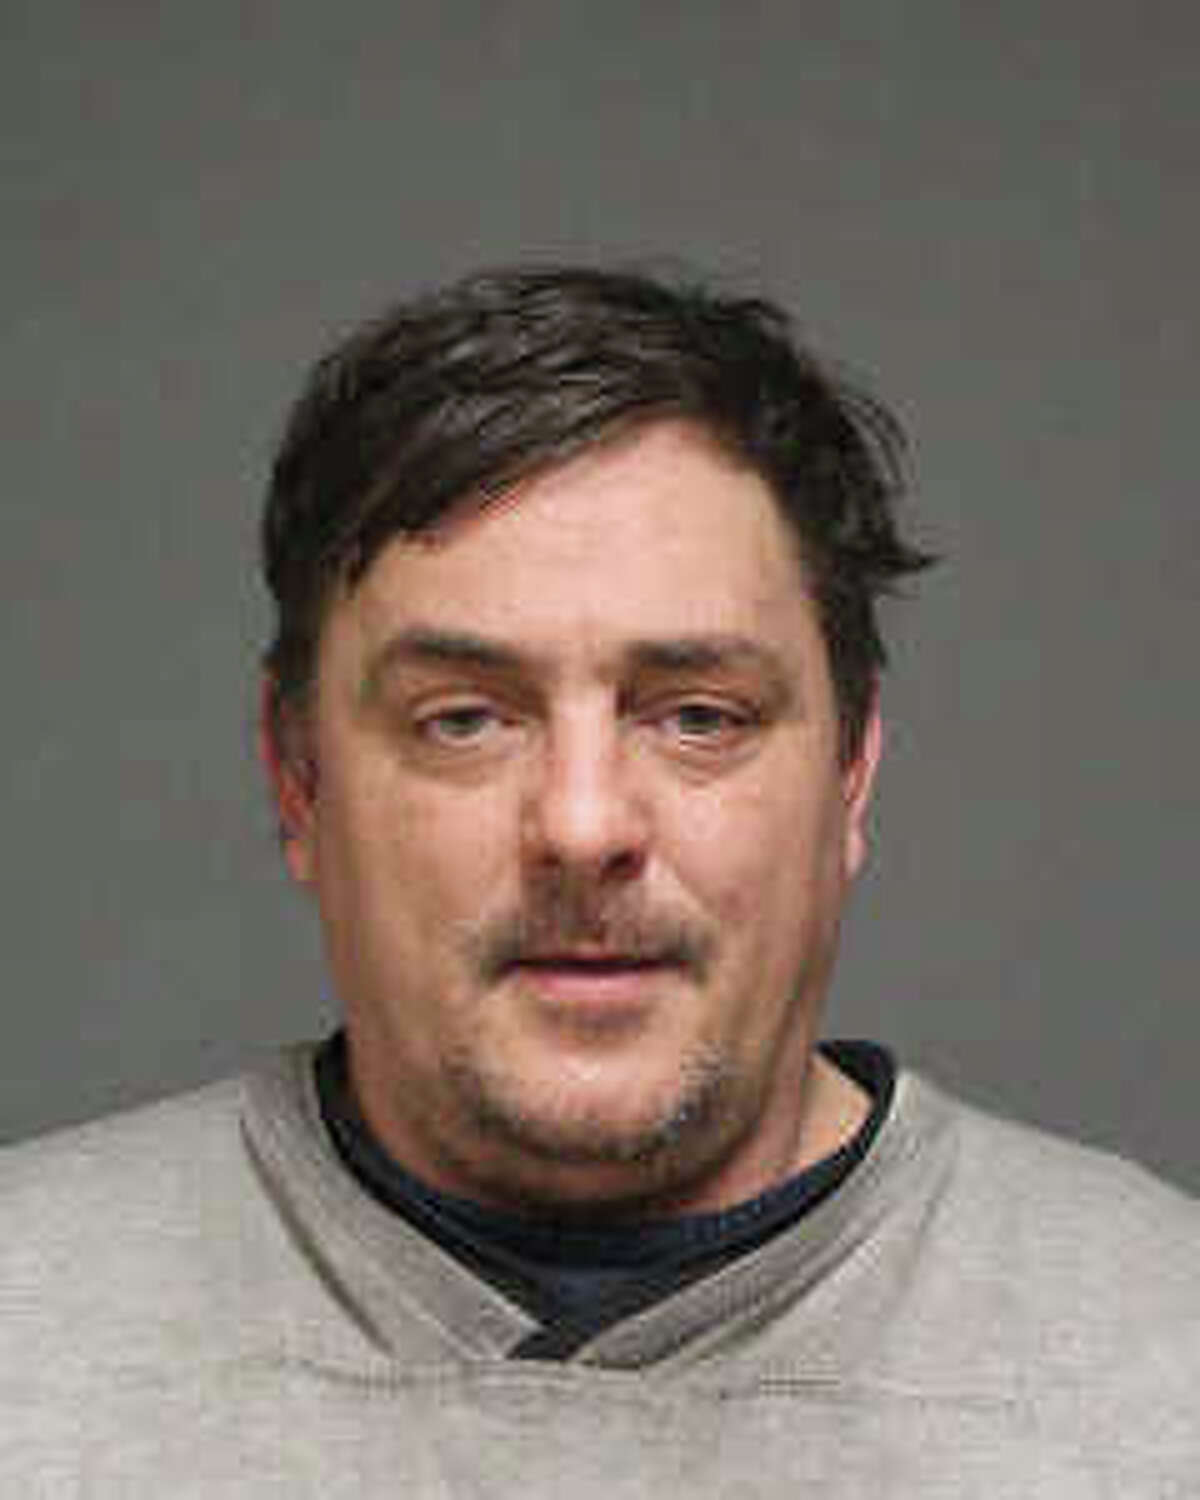 Fairfield police arrested 49-year-old Gregory Brooks after he allegedly walked into a local CVS store and falsely claimed to be a New Haven homicide detective. Police said Brooks might be connected to similar incidents in Waterville and Naugatuck.